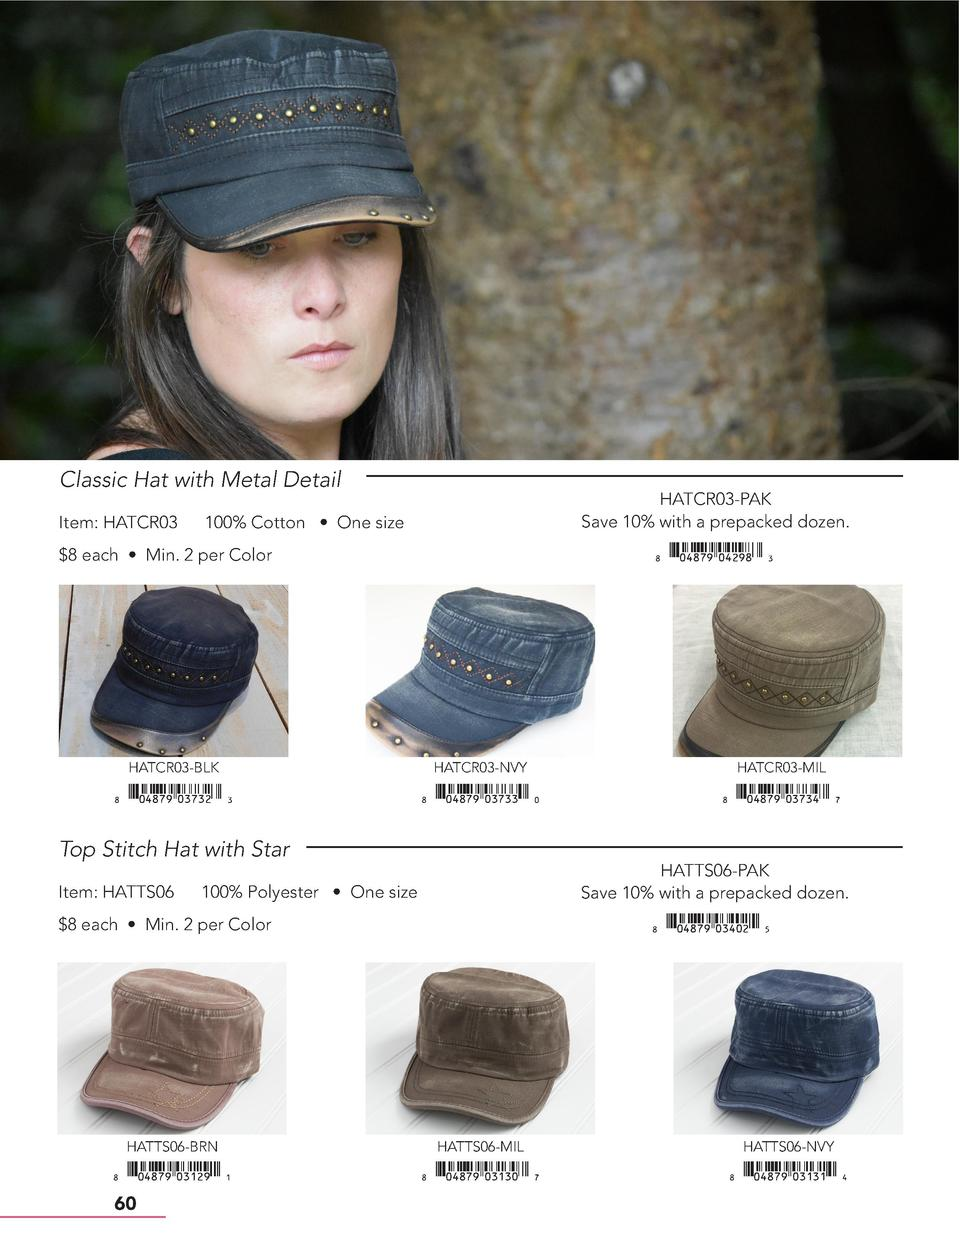 Classic Hat with Metal Detail Item  HATCR03  HATCR03-PAK Save 10  with a prepacked dozen.  100  Cotton     One size    xiA...